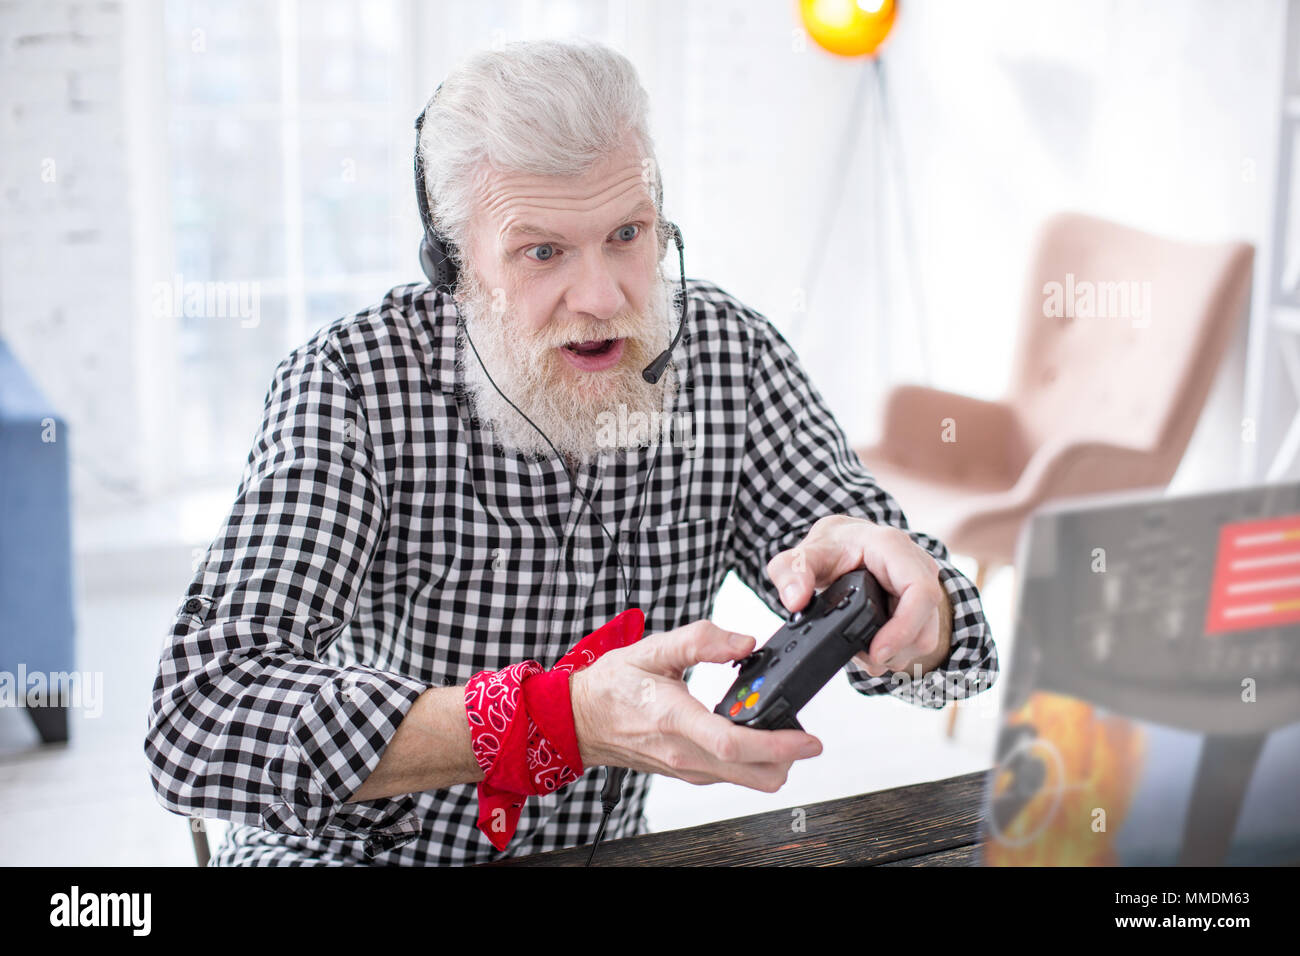 White-haired elderly man playing video game excitingly - Stock Image